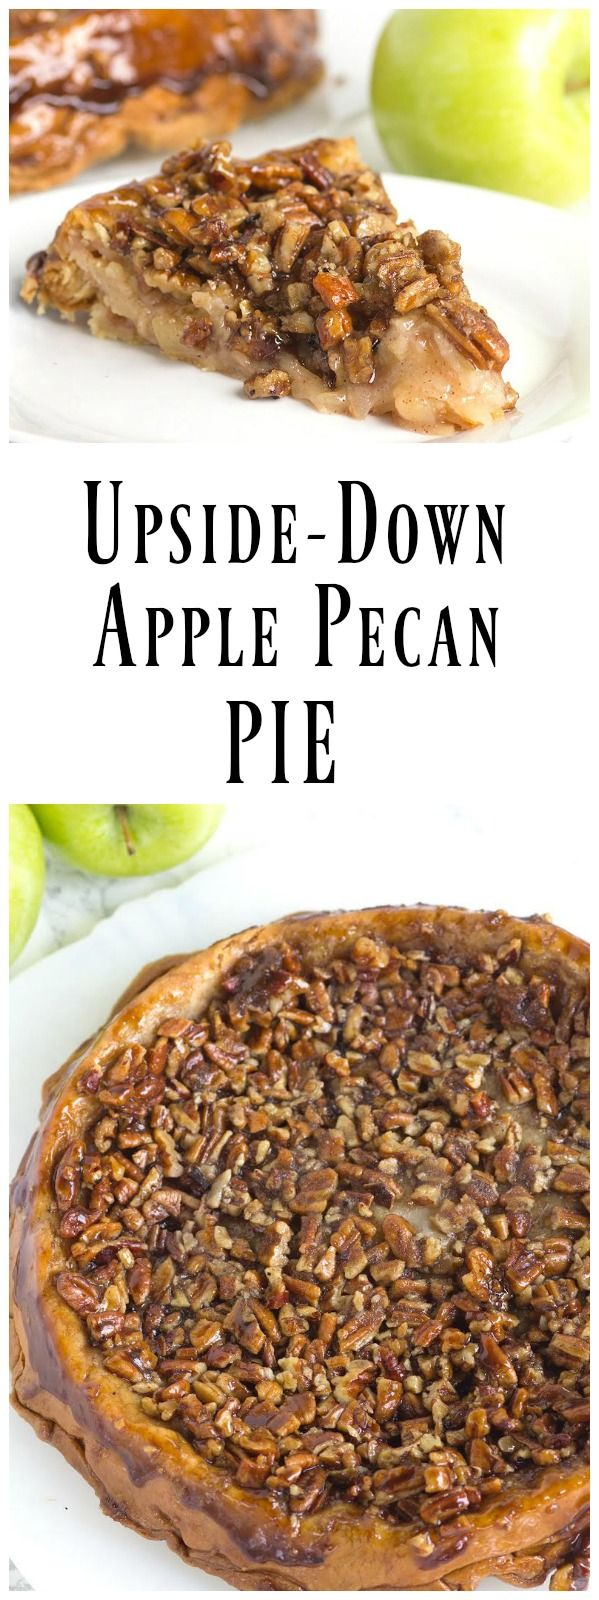 A truly unique recipe for Upside Down Apple Pecan Pie - everyone loves this fall pie recipe!